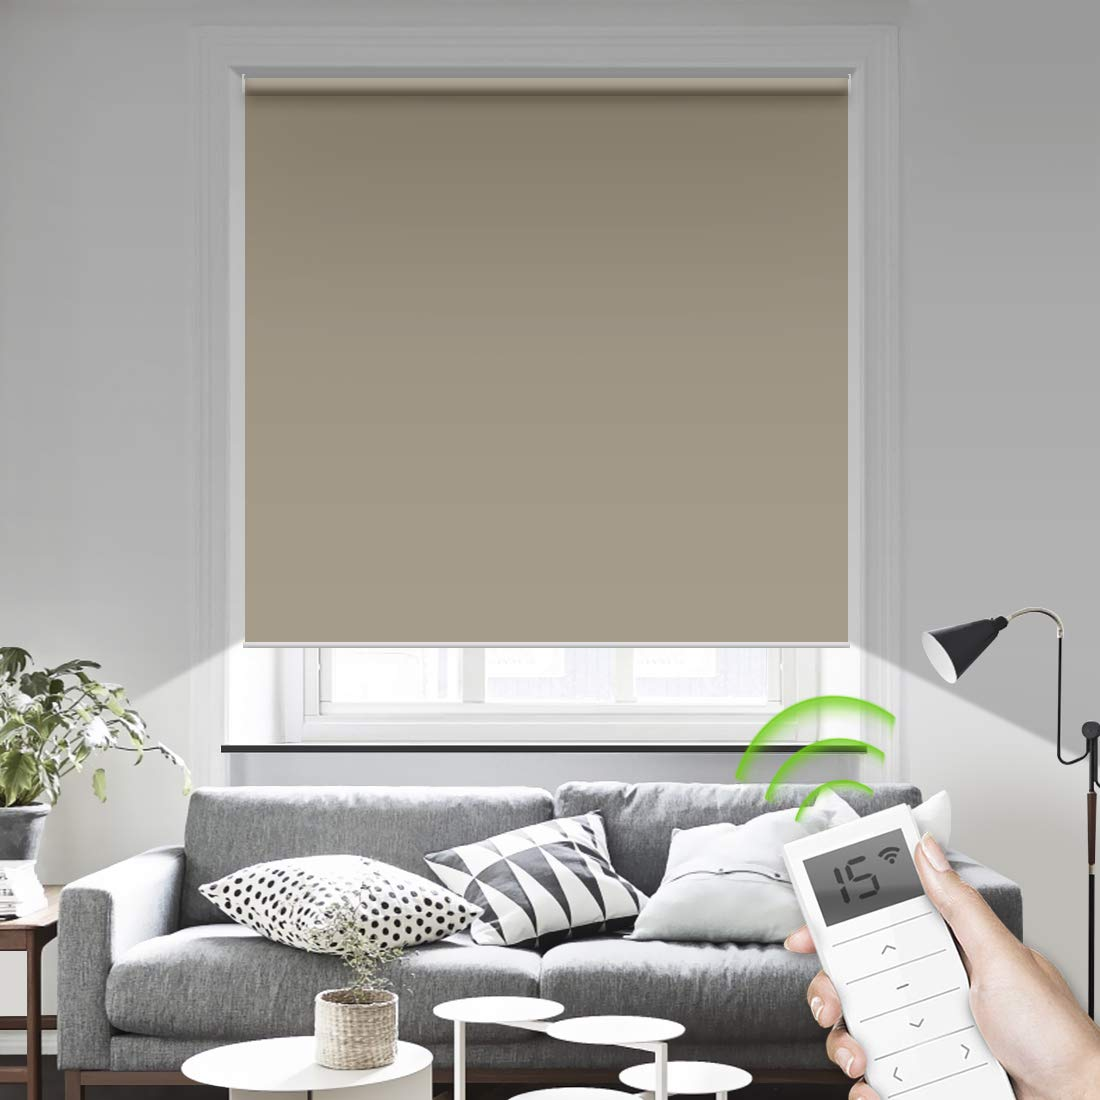 Motorized Smart Blinds Remote Control Window Roller Shade Wireless  Rechargeable -100% Blackout Window Shades for Office Restaurant Customized  Size